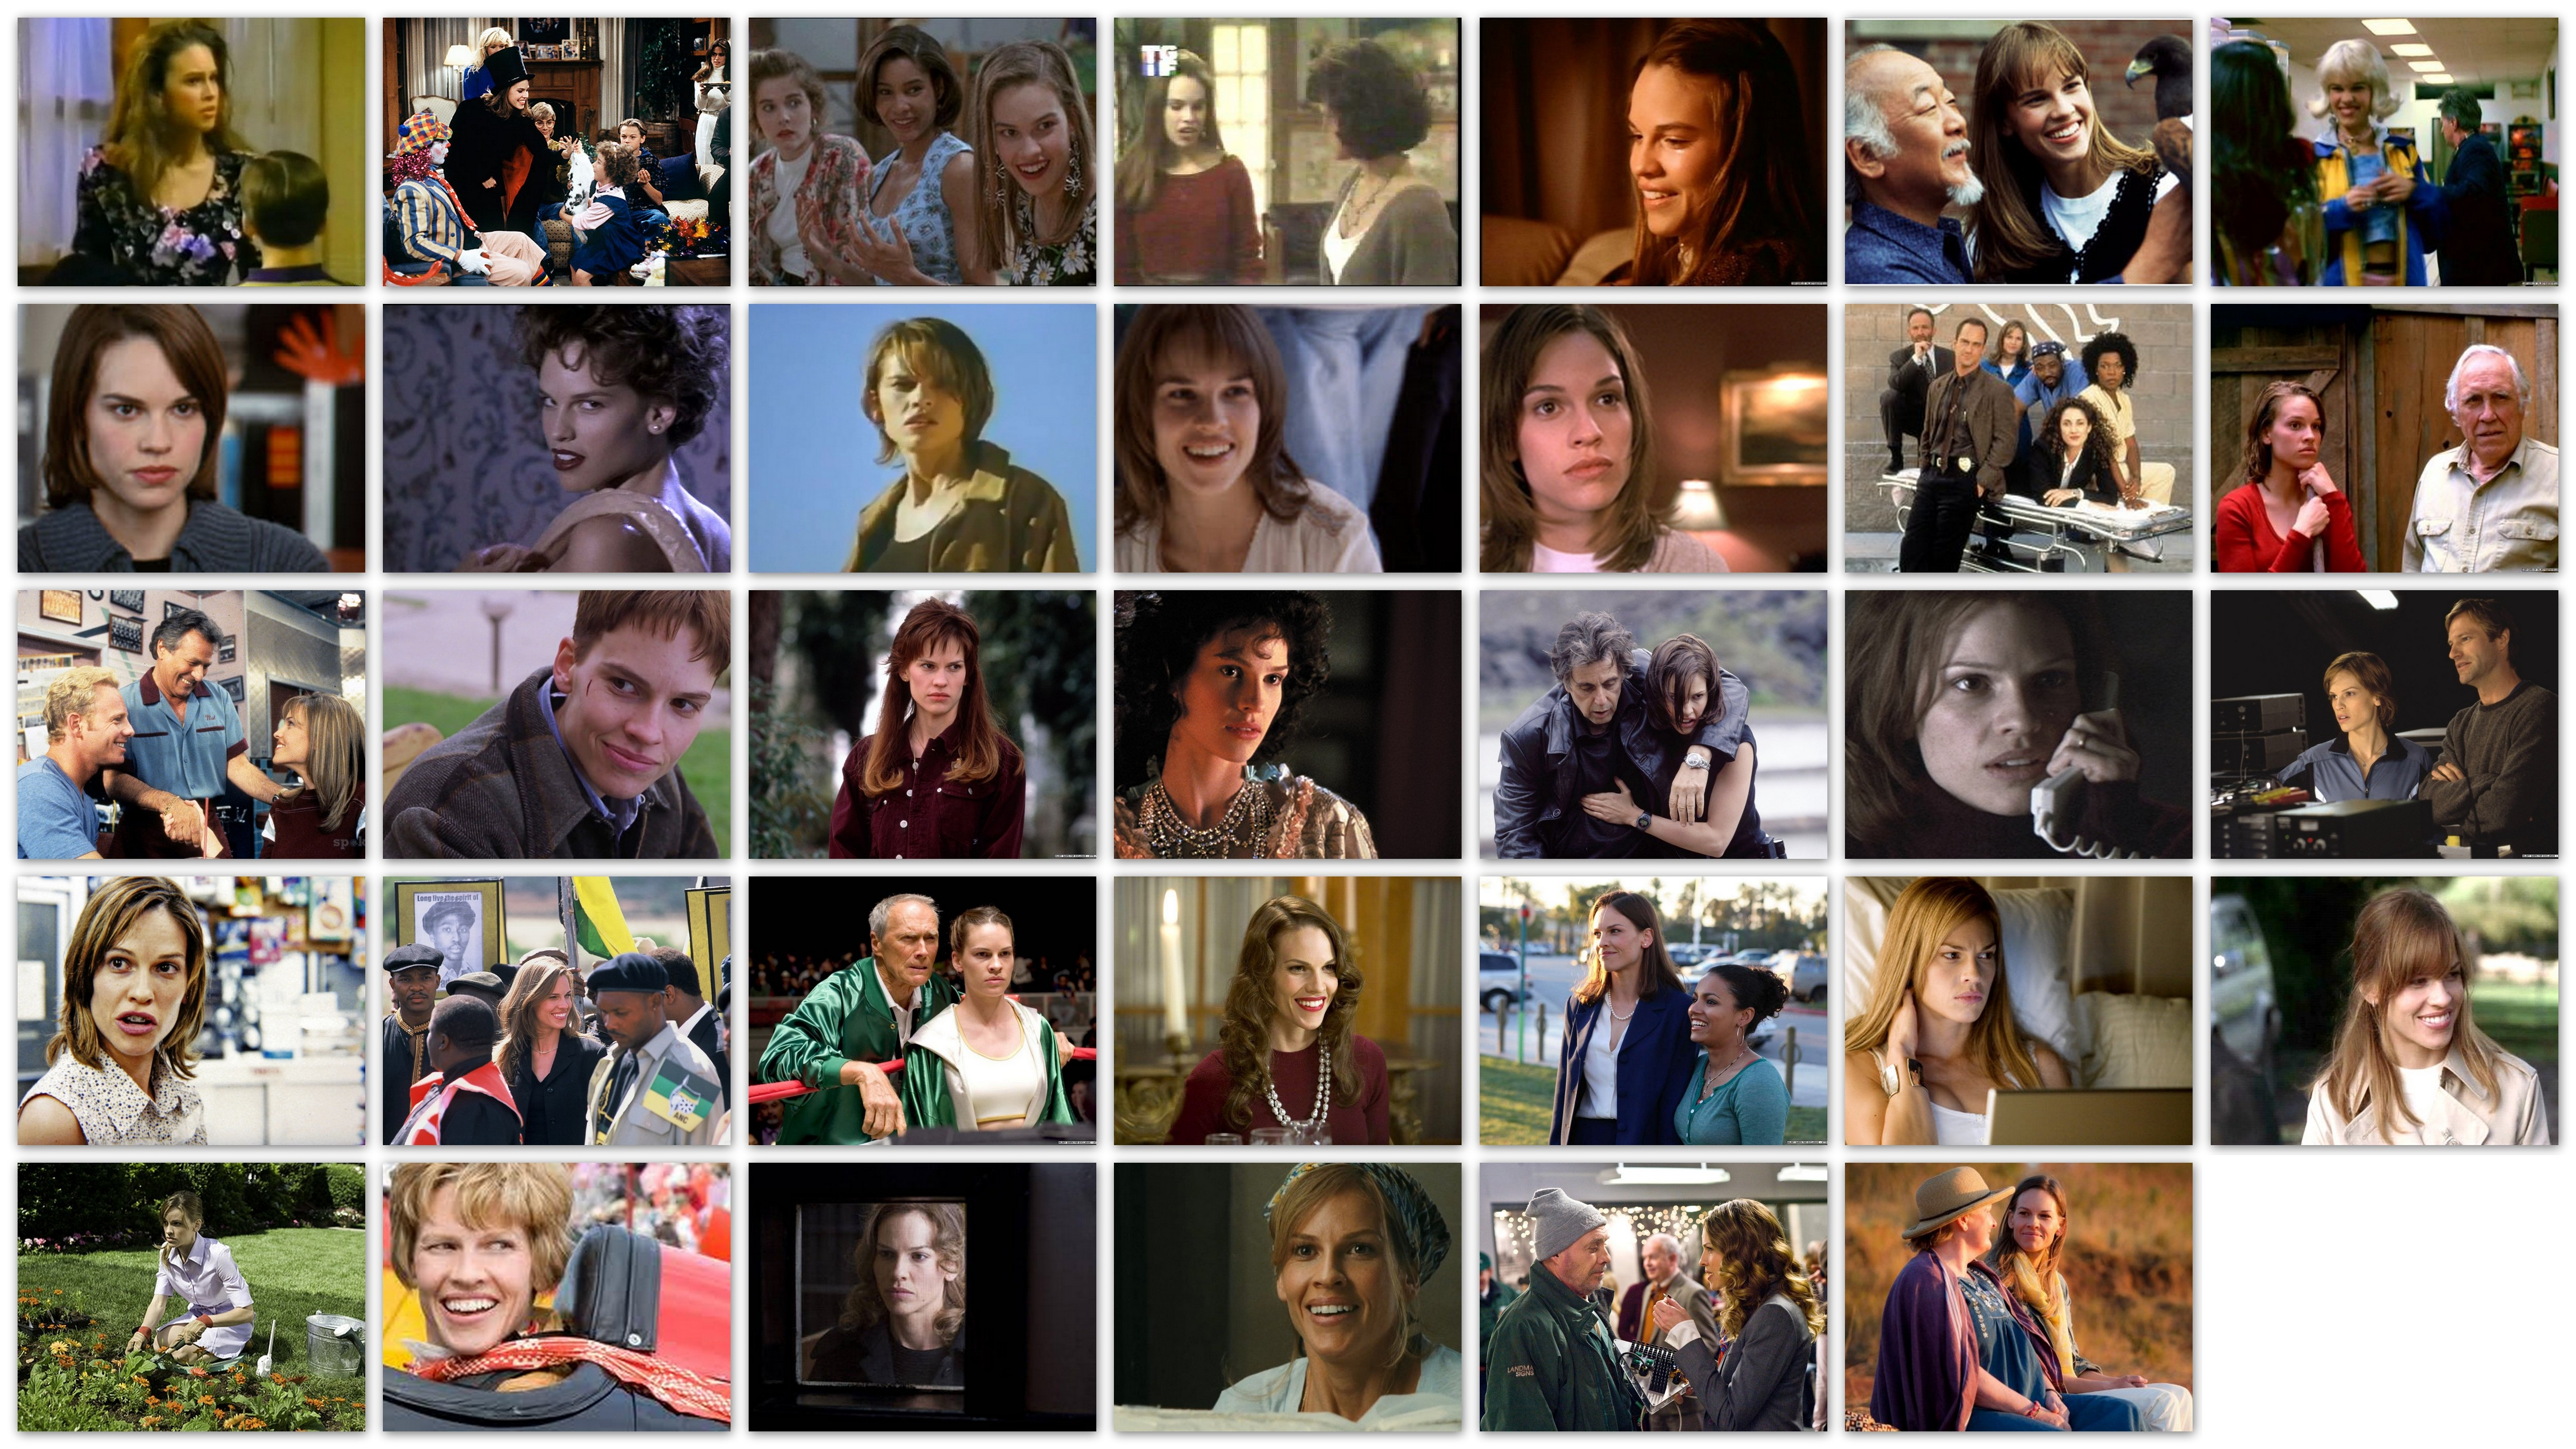 An overview in pictures of the roles of actress Hilary Swank, movie, movies, career